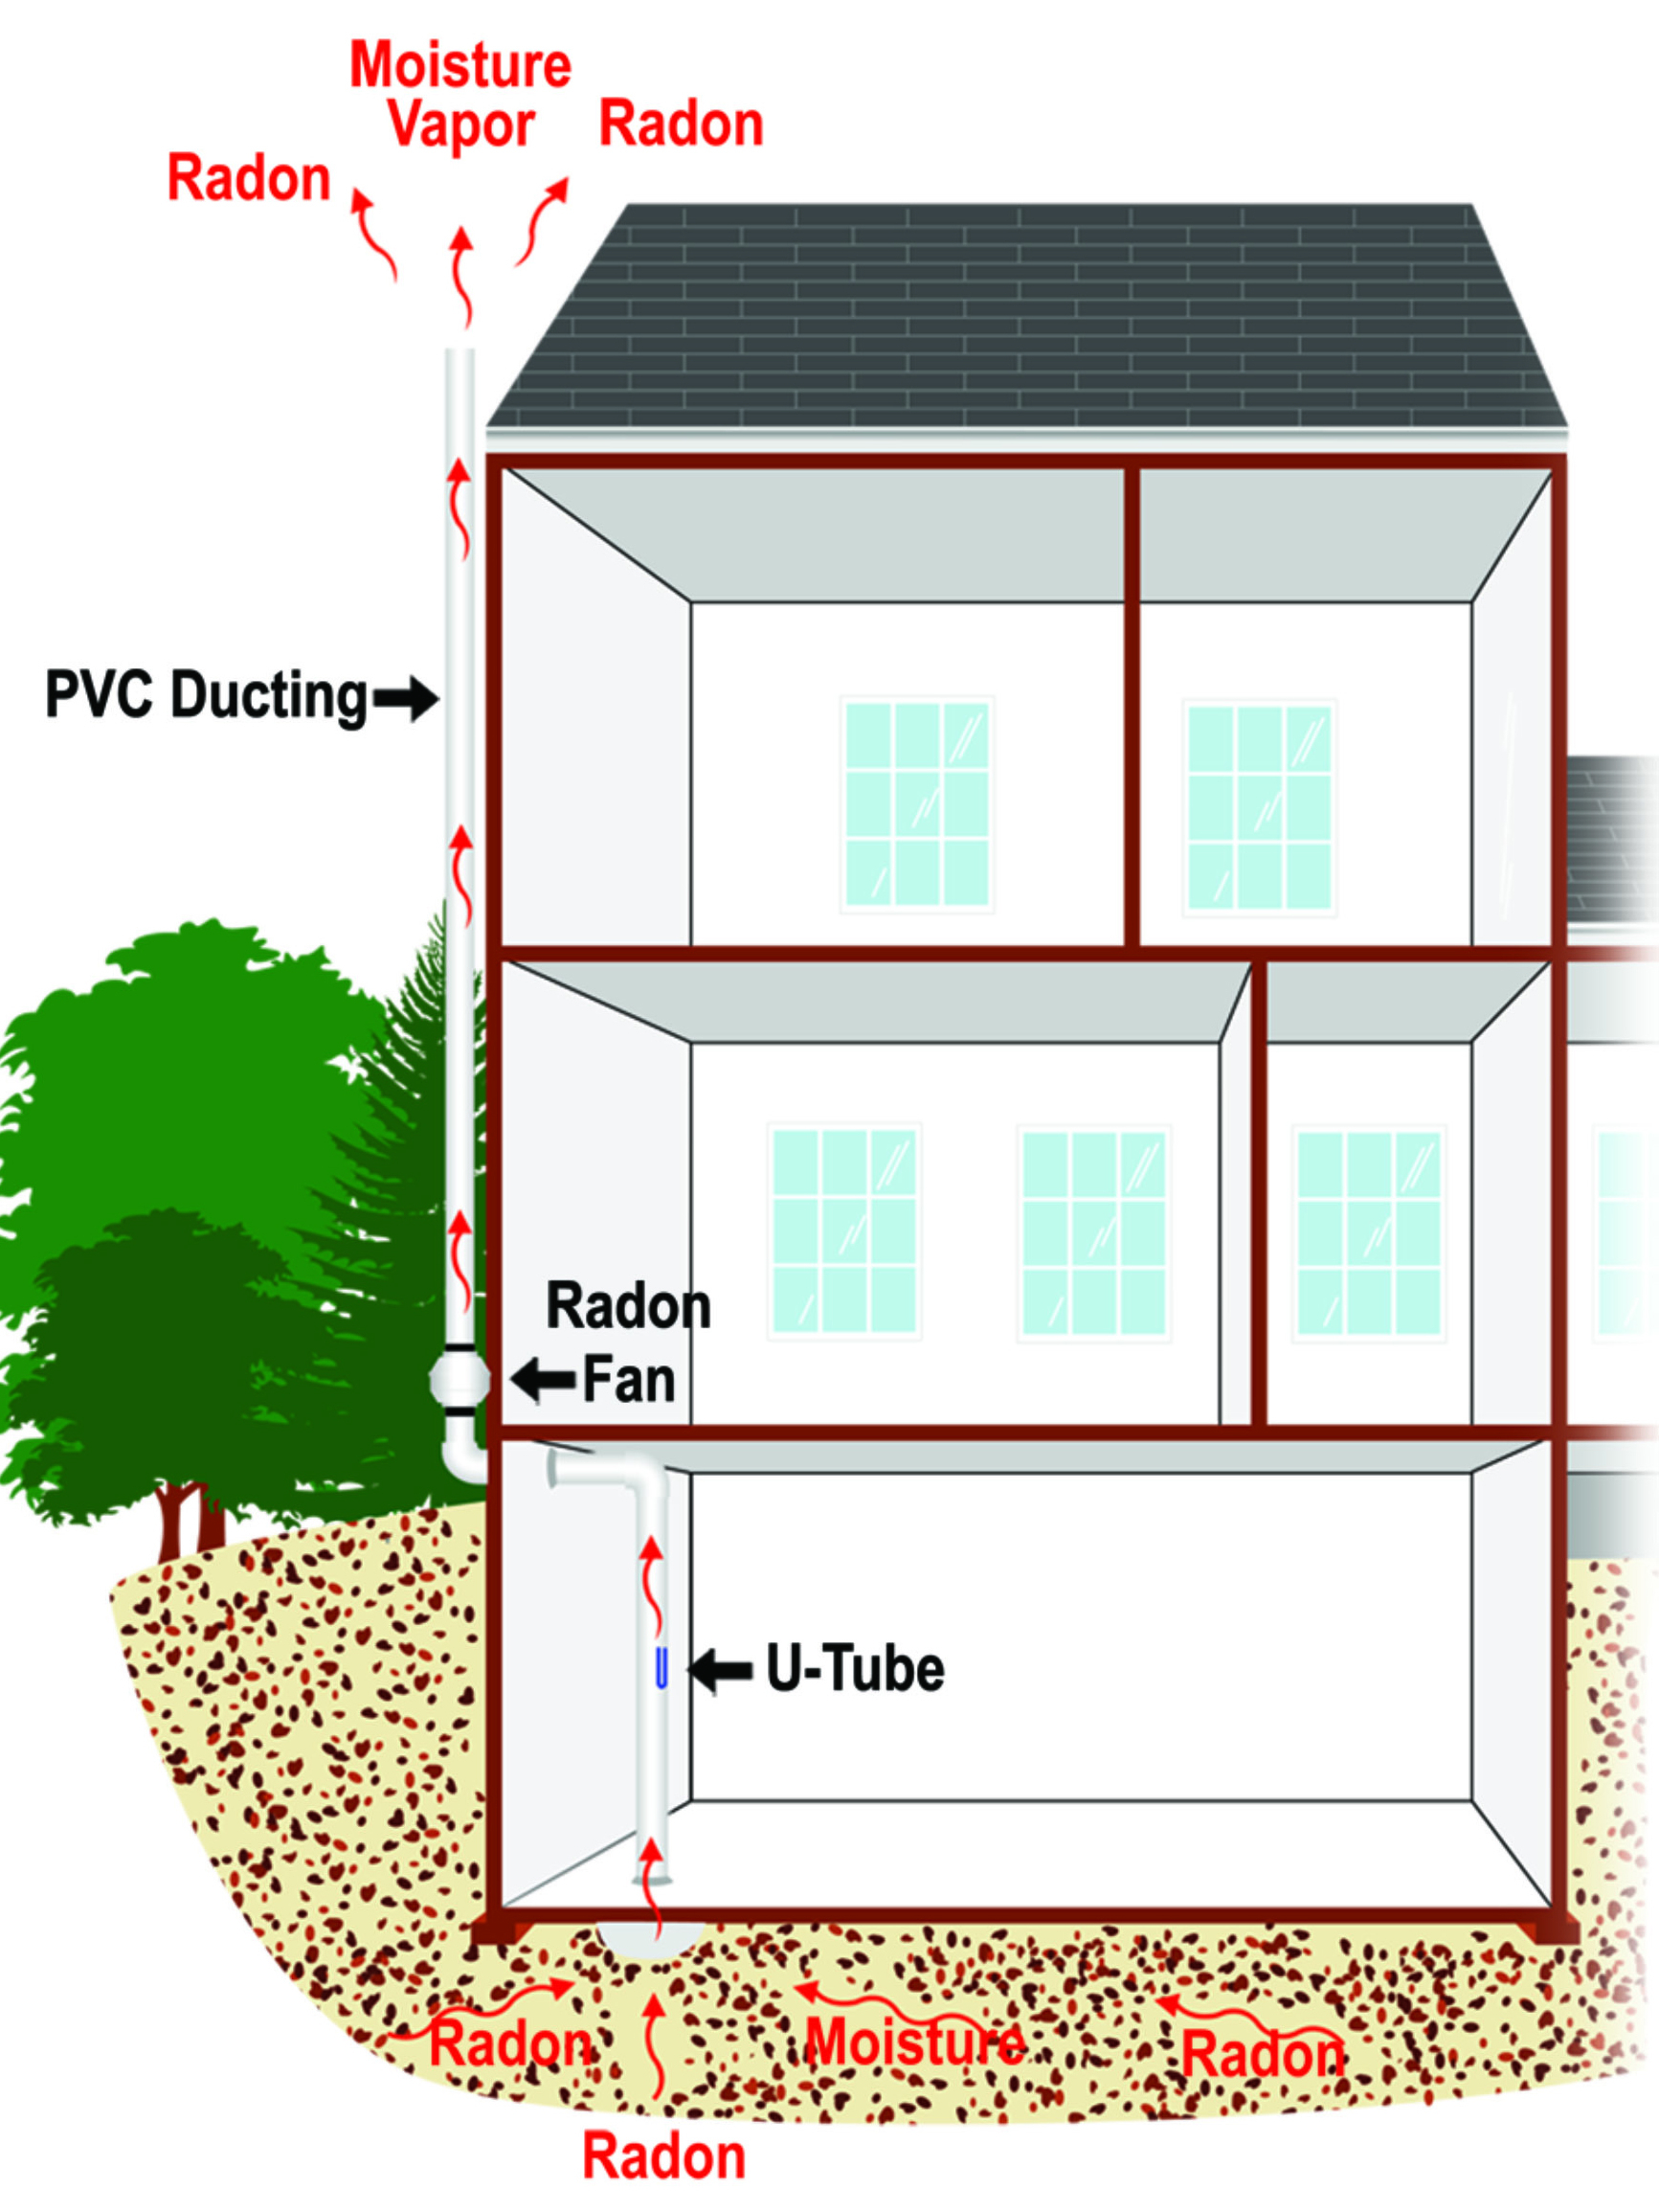 Fixing Homes with Radon Problems Reduces Lung Cancer Risk